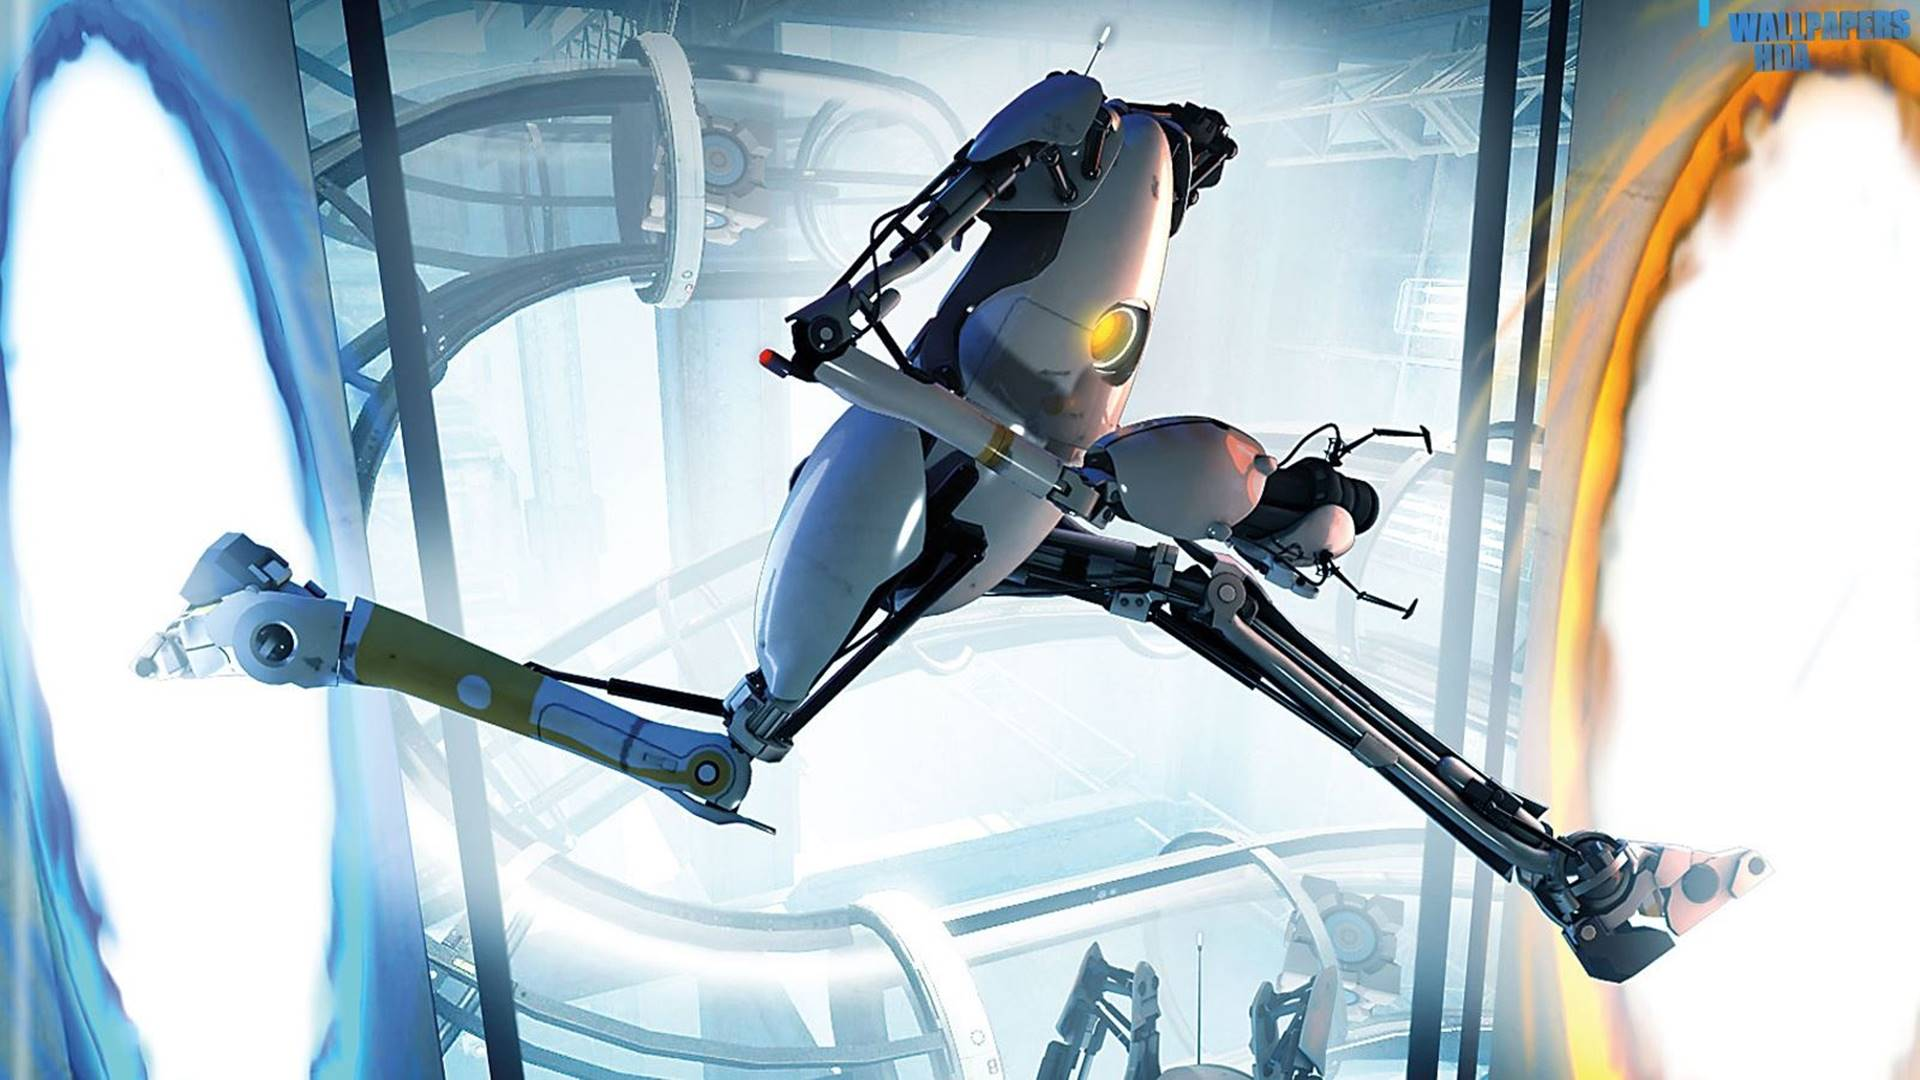 <h3>1. Portal 2</h3>Portal 2 claims the top spot (for the final year on this list before it ages out) because, in the past decade, nothing else has struck so many chords so perfectly and accomplishes so much so well. Its impeccable level design, charming personality, and exceptional and varied puzzle systems make us feel smarter just for getting through it. Plus, its co-op campaign requires a different sort of collaborative smarts, and that helps it remain one of the best multiplayer experiences you can share with a pal around.<br /> Valve is a developer that, presumably because of the time it takes to make its incredible games, creates a feeling of timelessness in its design. Portal 2 – which iterated on and added to the brilliant, mind-bending puzzles and world-building of its short but sweet predecessor – feels just as clever and unique as it did in 2011. Simply put, if you've never played Portal 2, your top gaming priority right now should be to do just that. <br /><br /><i><a  data-cke-saved-href=